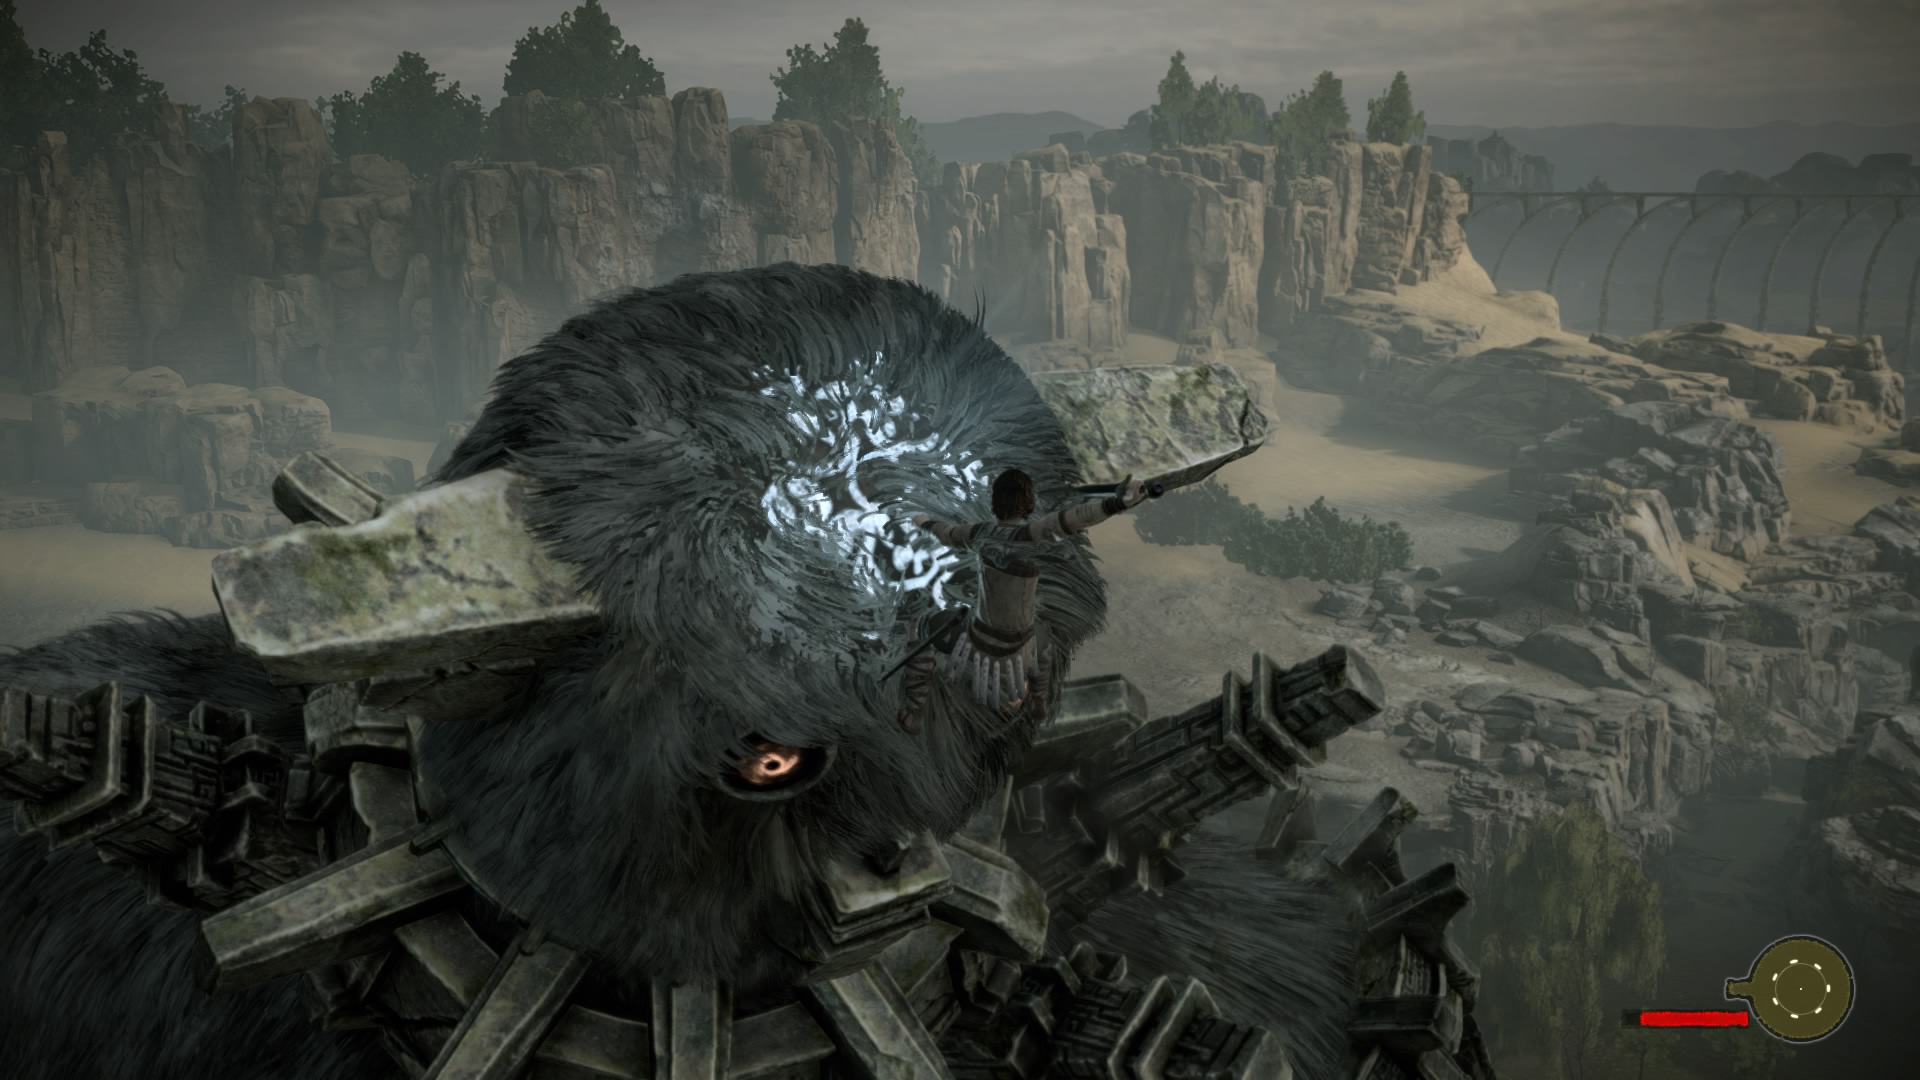 Shadow of the Colossus: Vale a Pena? 3